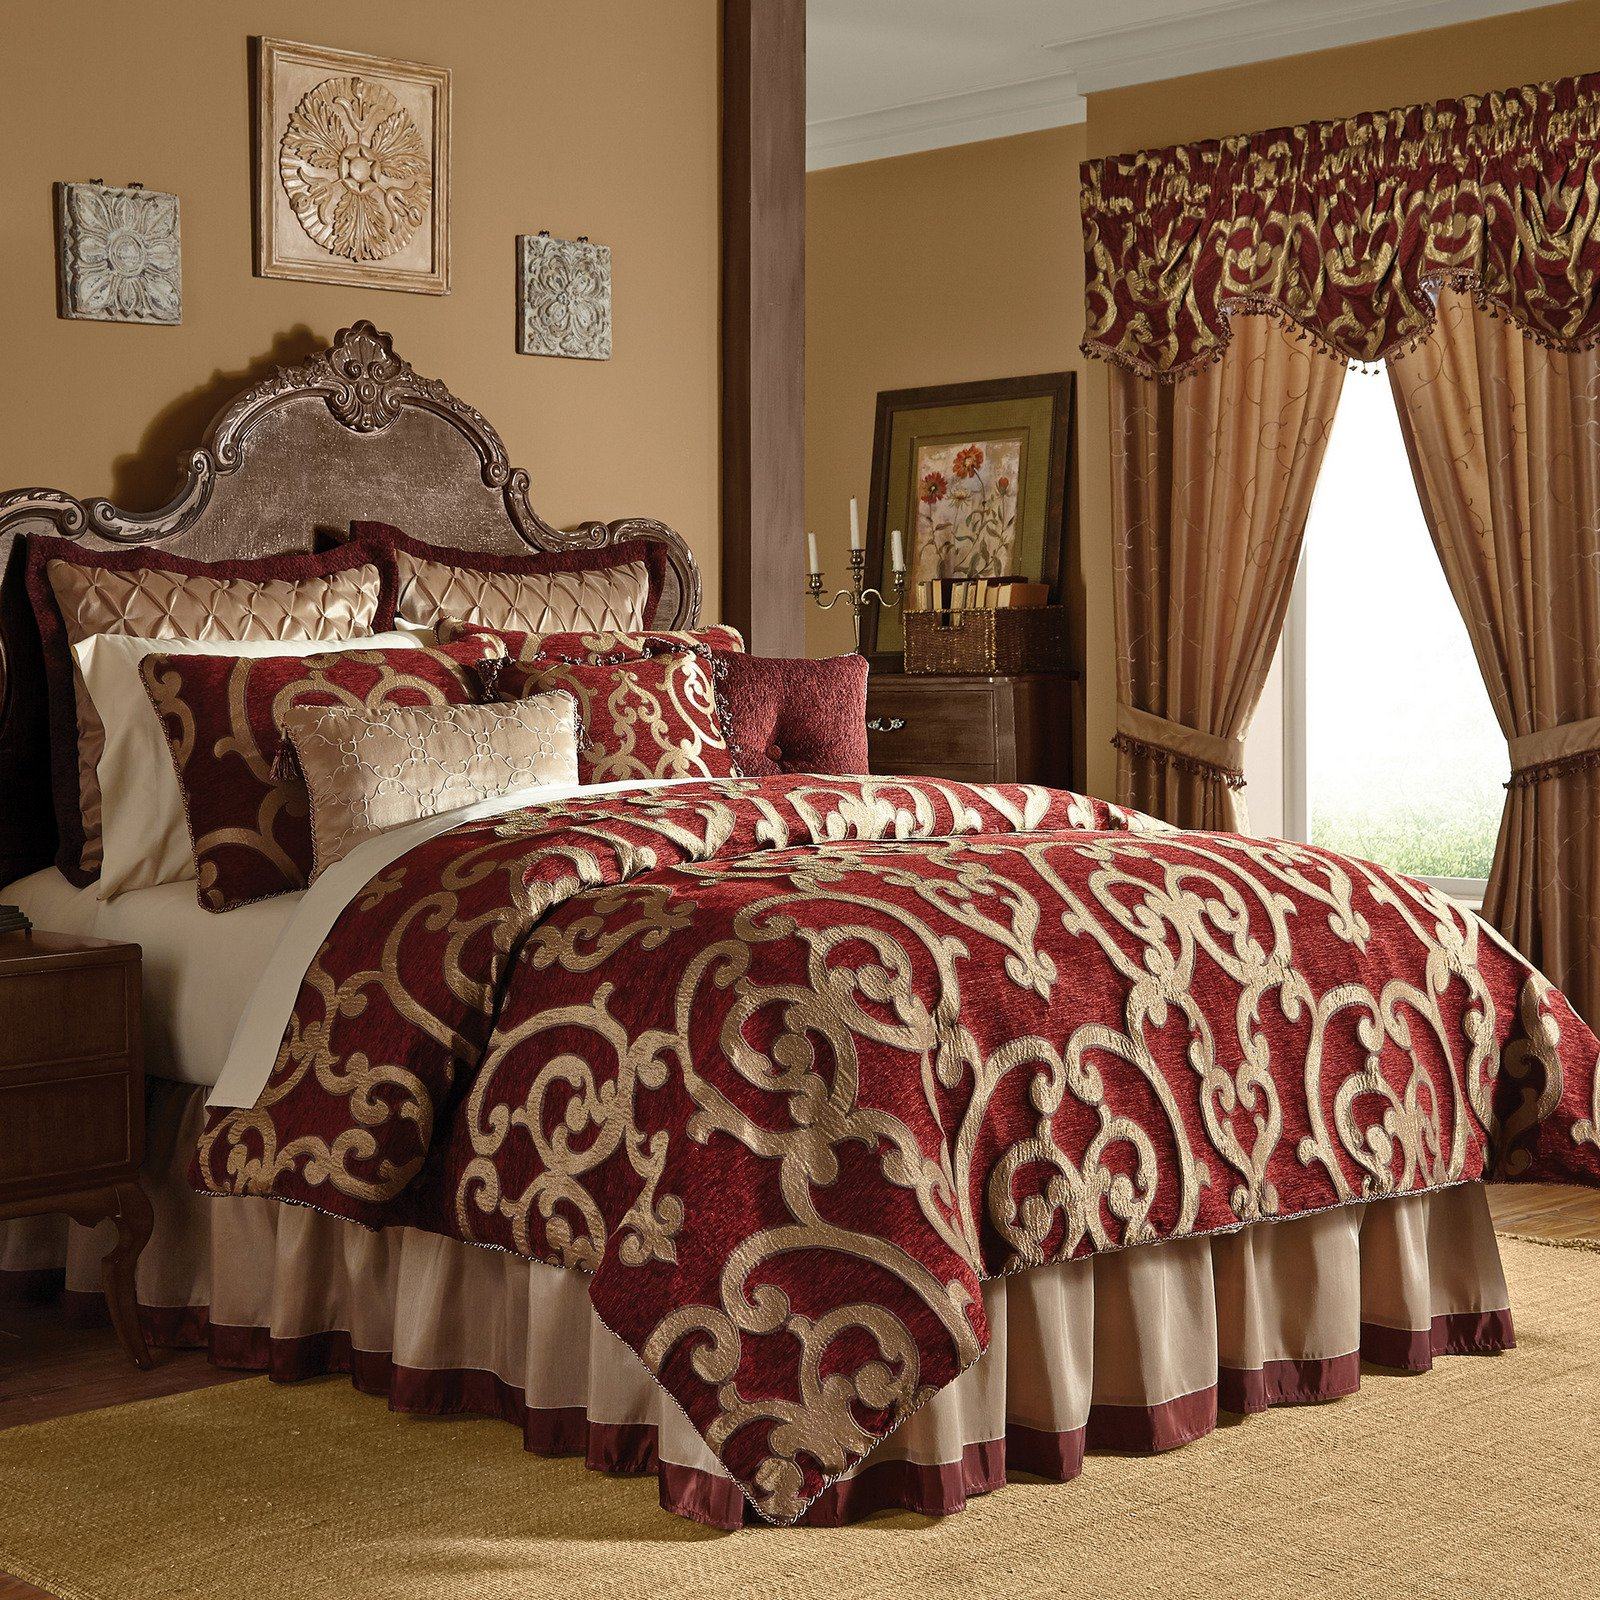 Red Comforter Set In King Or Queen